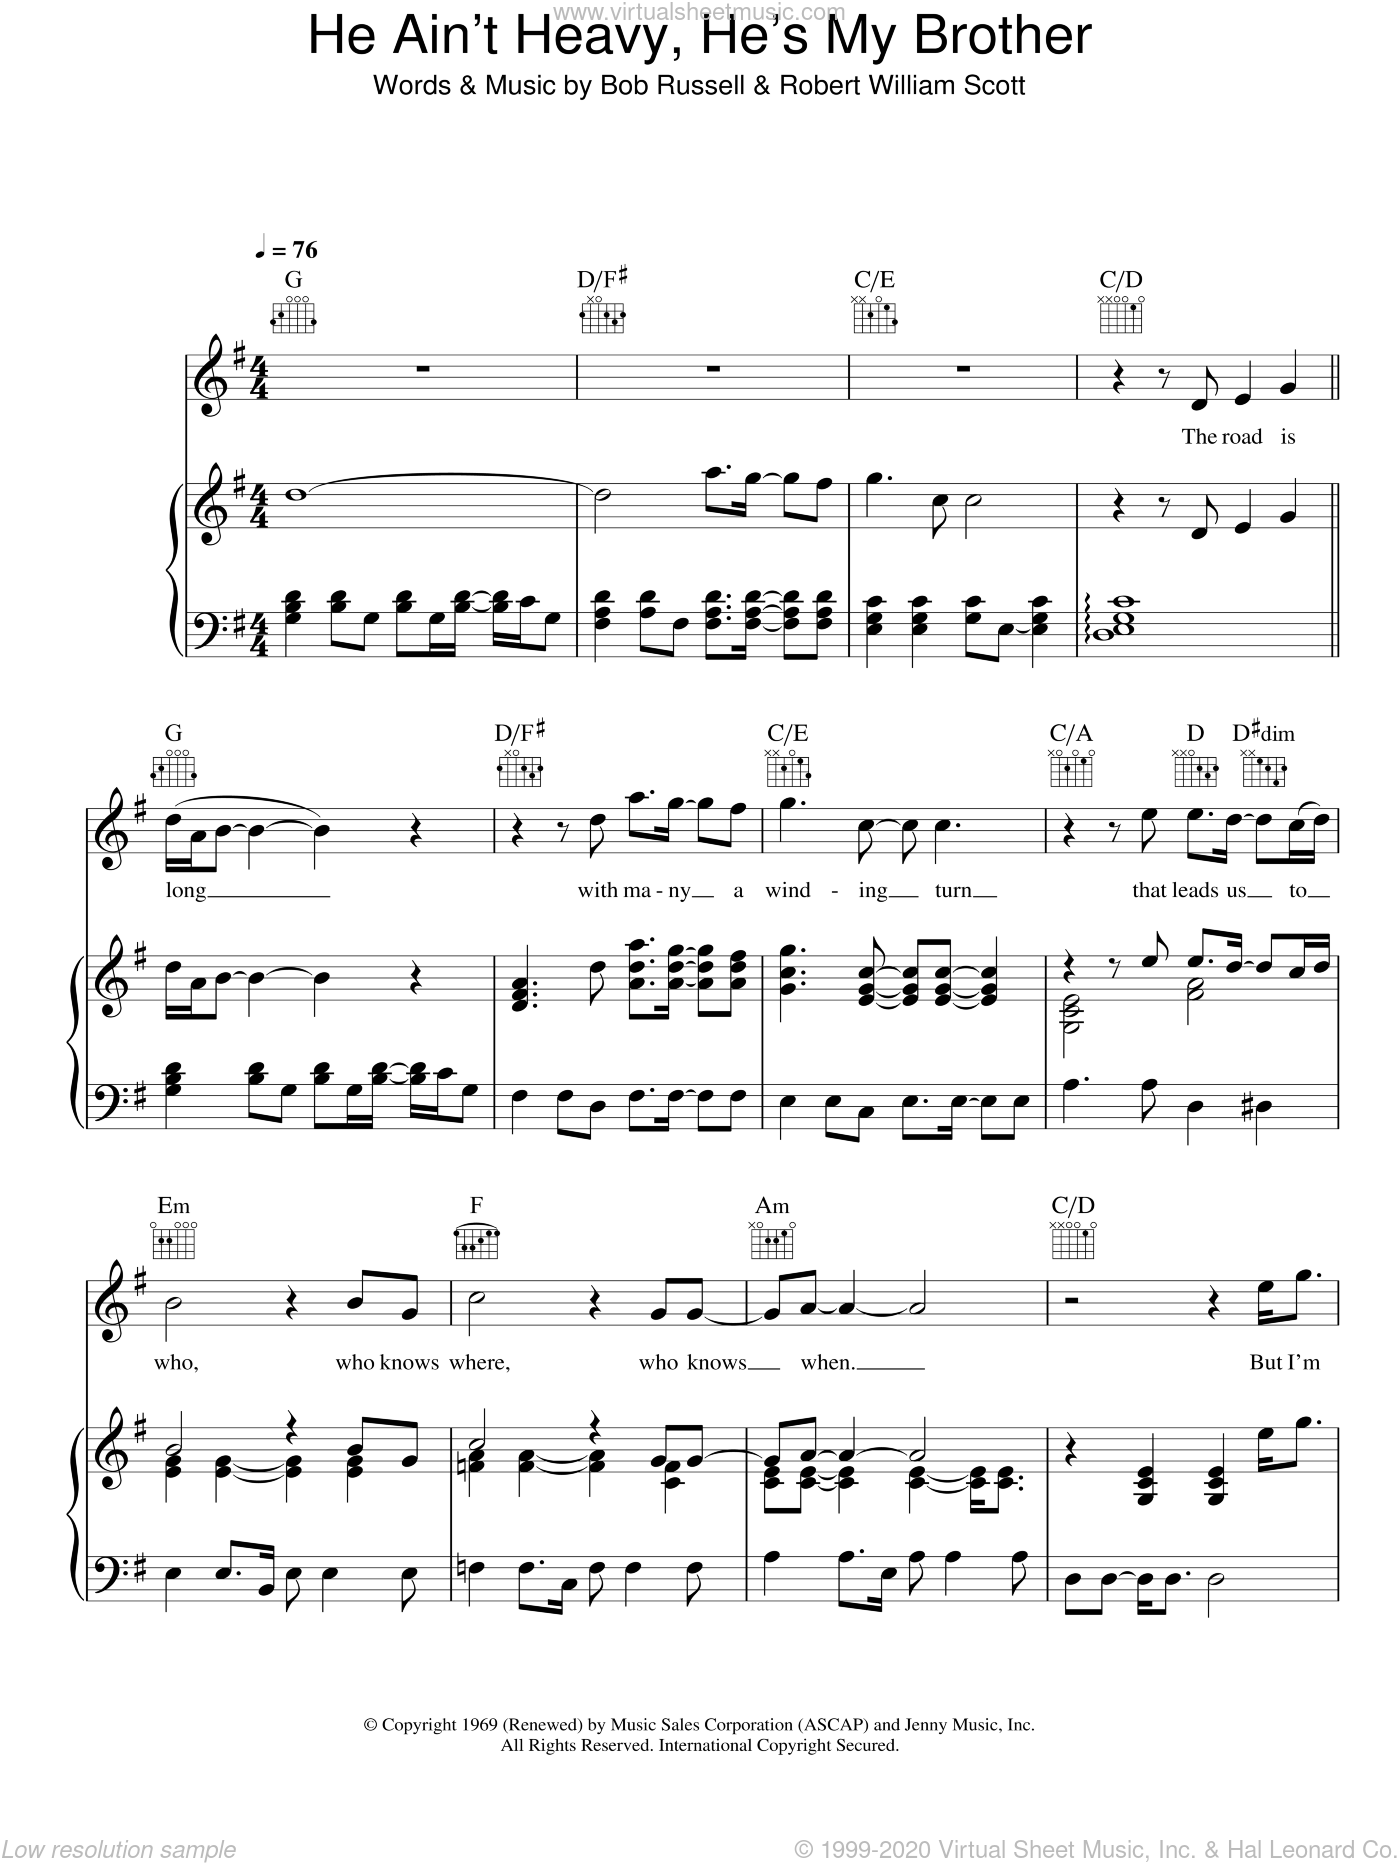 He Ain't Heavy, He's My Brother sheet music for voice, piano or guitar by Robert William Scott